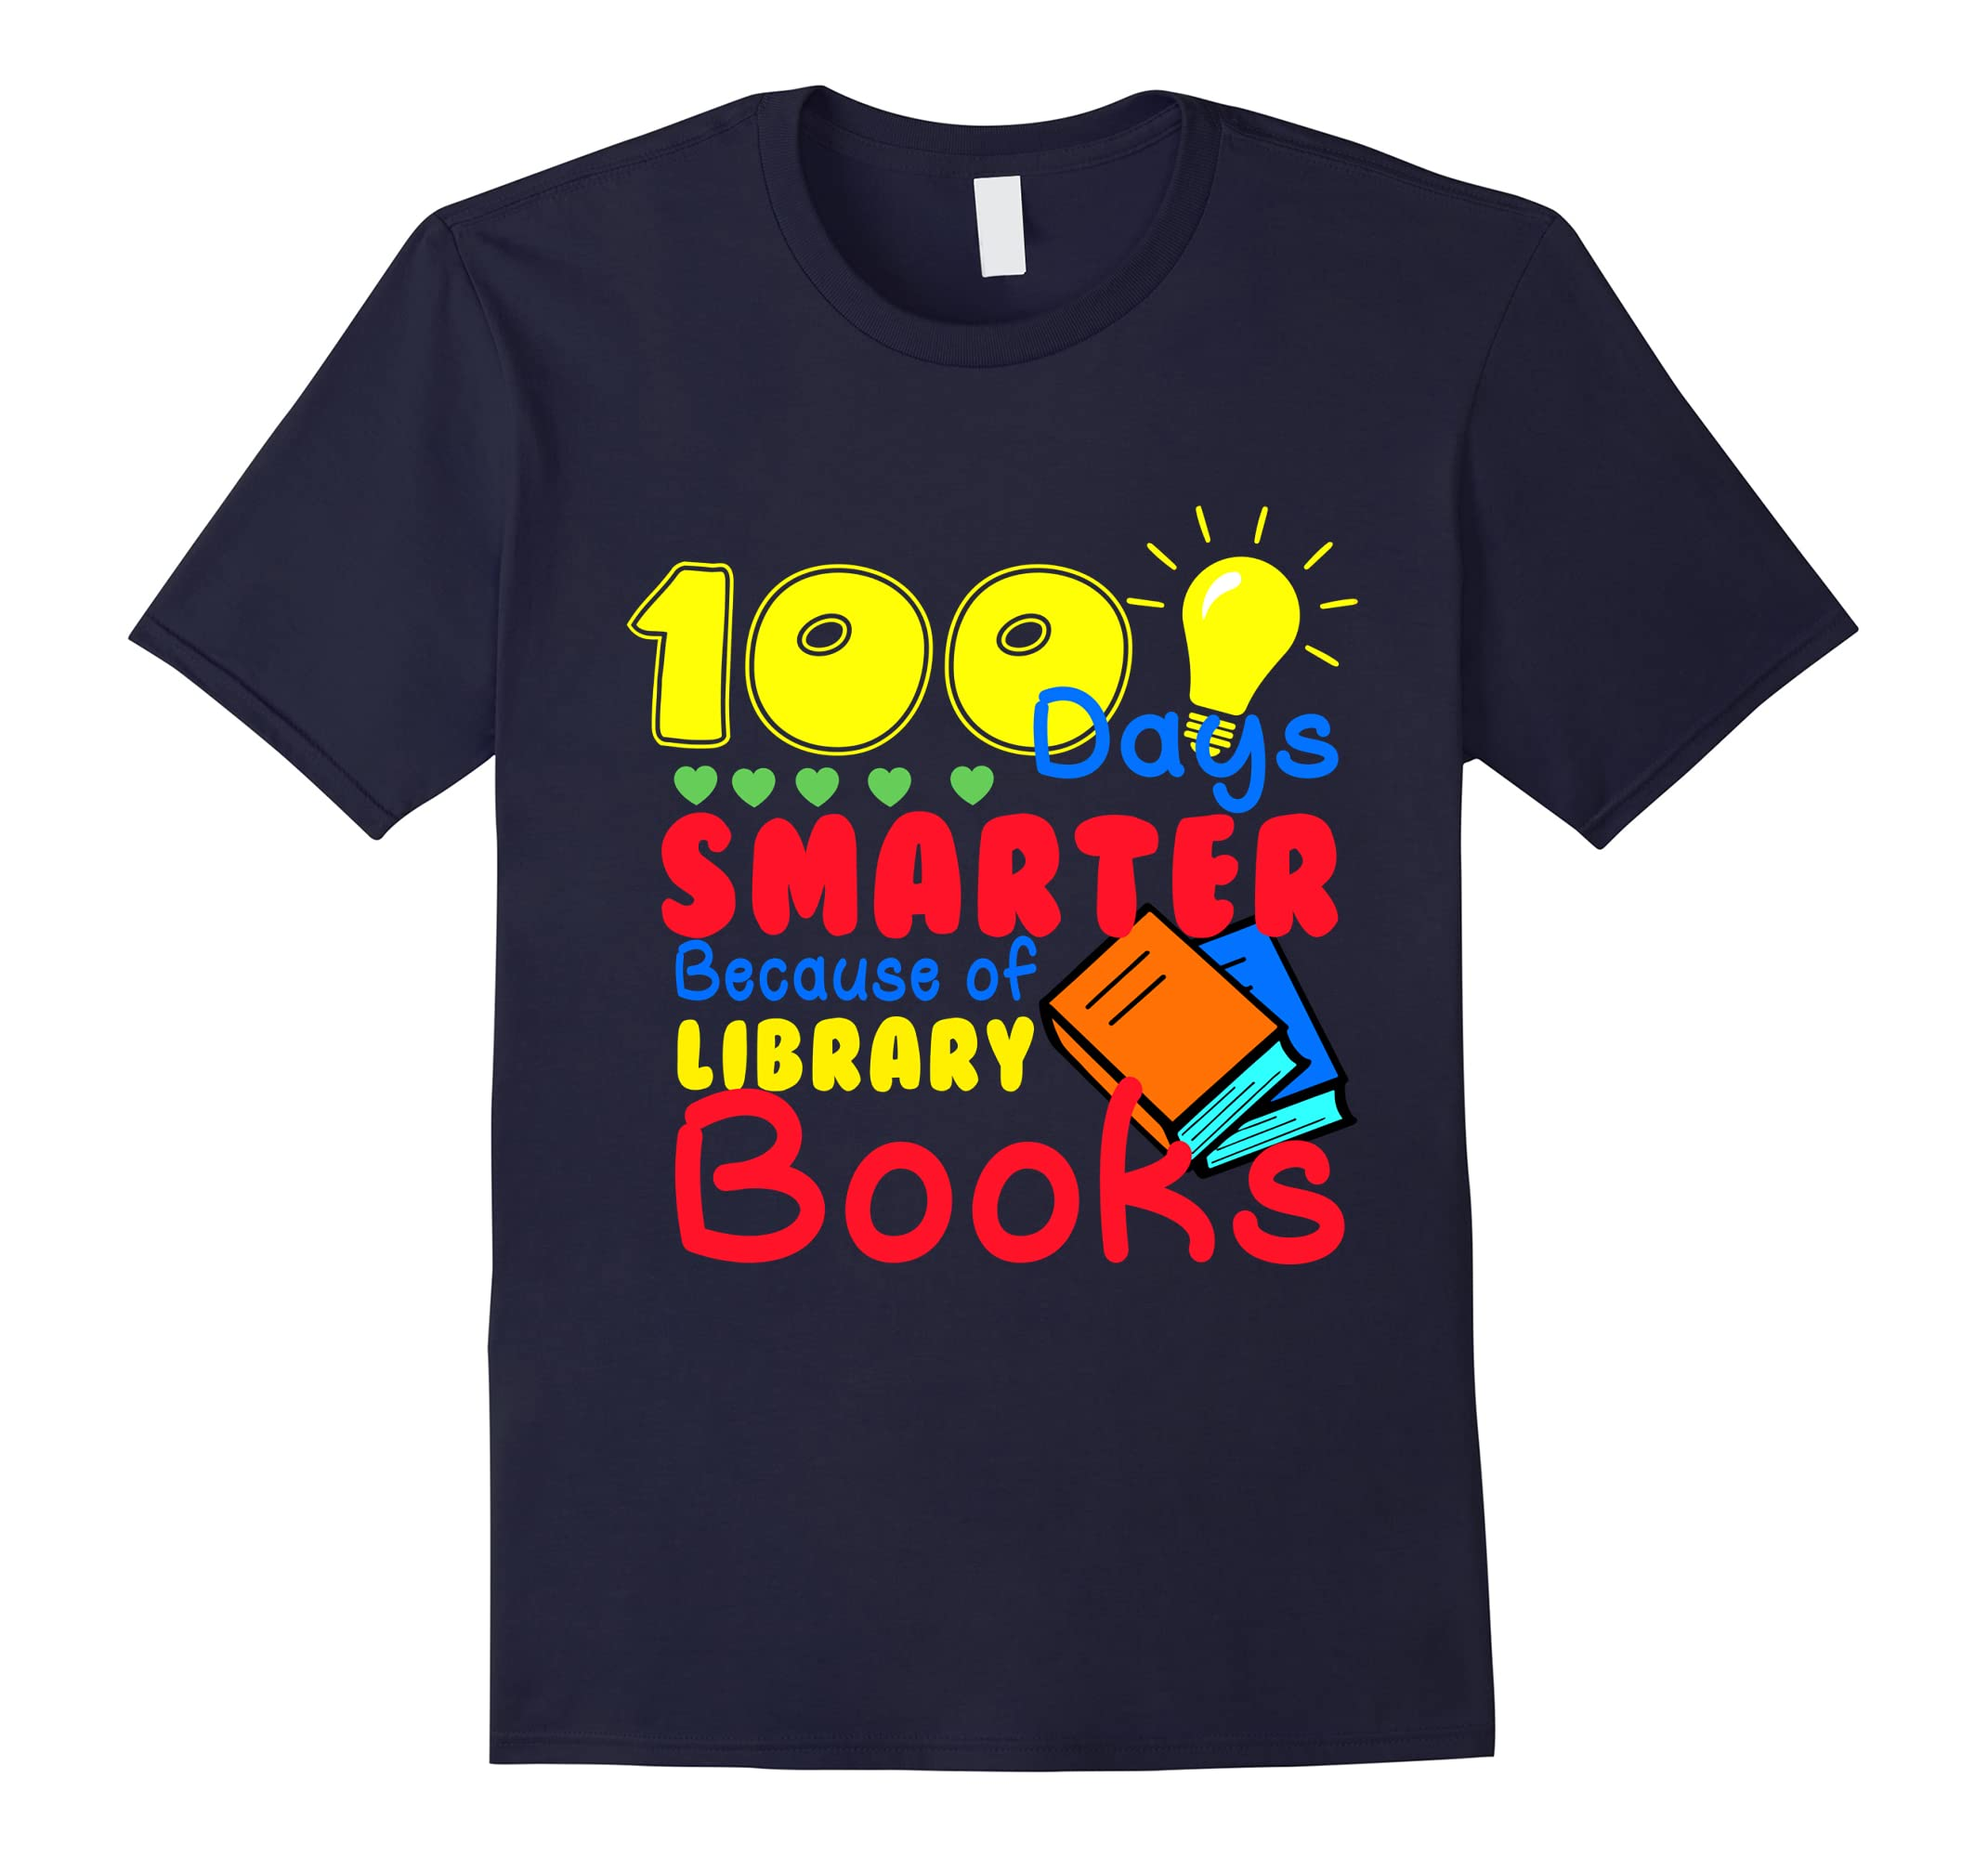 100 Days Smarter Because of Library Books Kids Tshirt-ah my shirt one gift